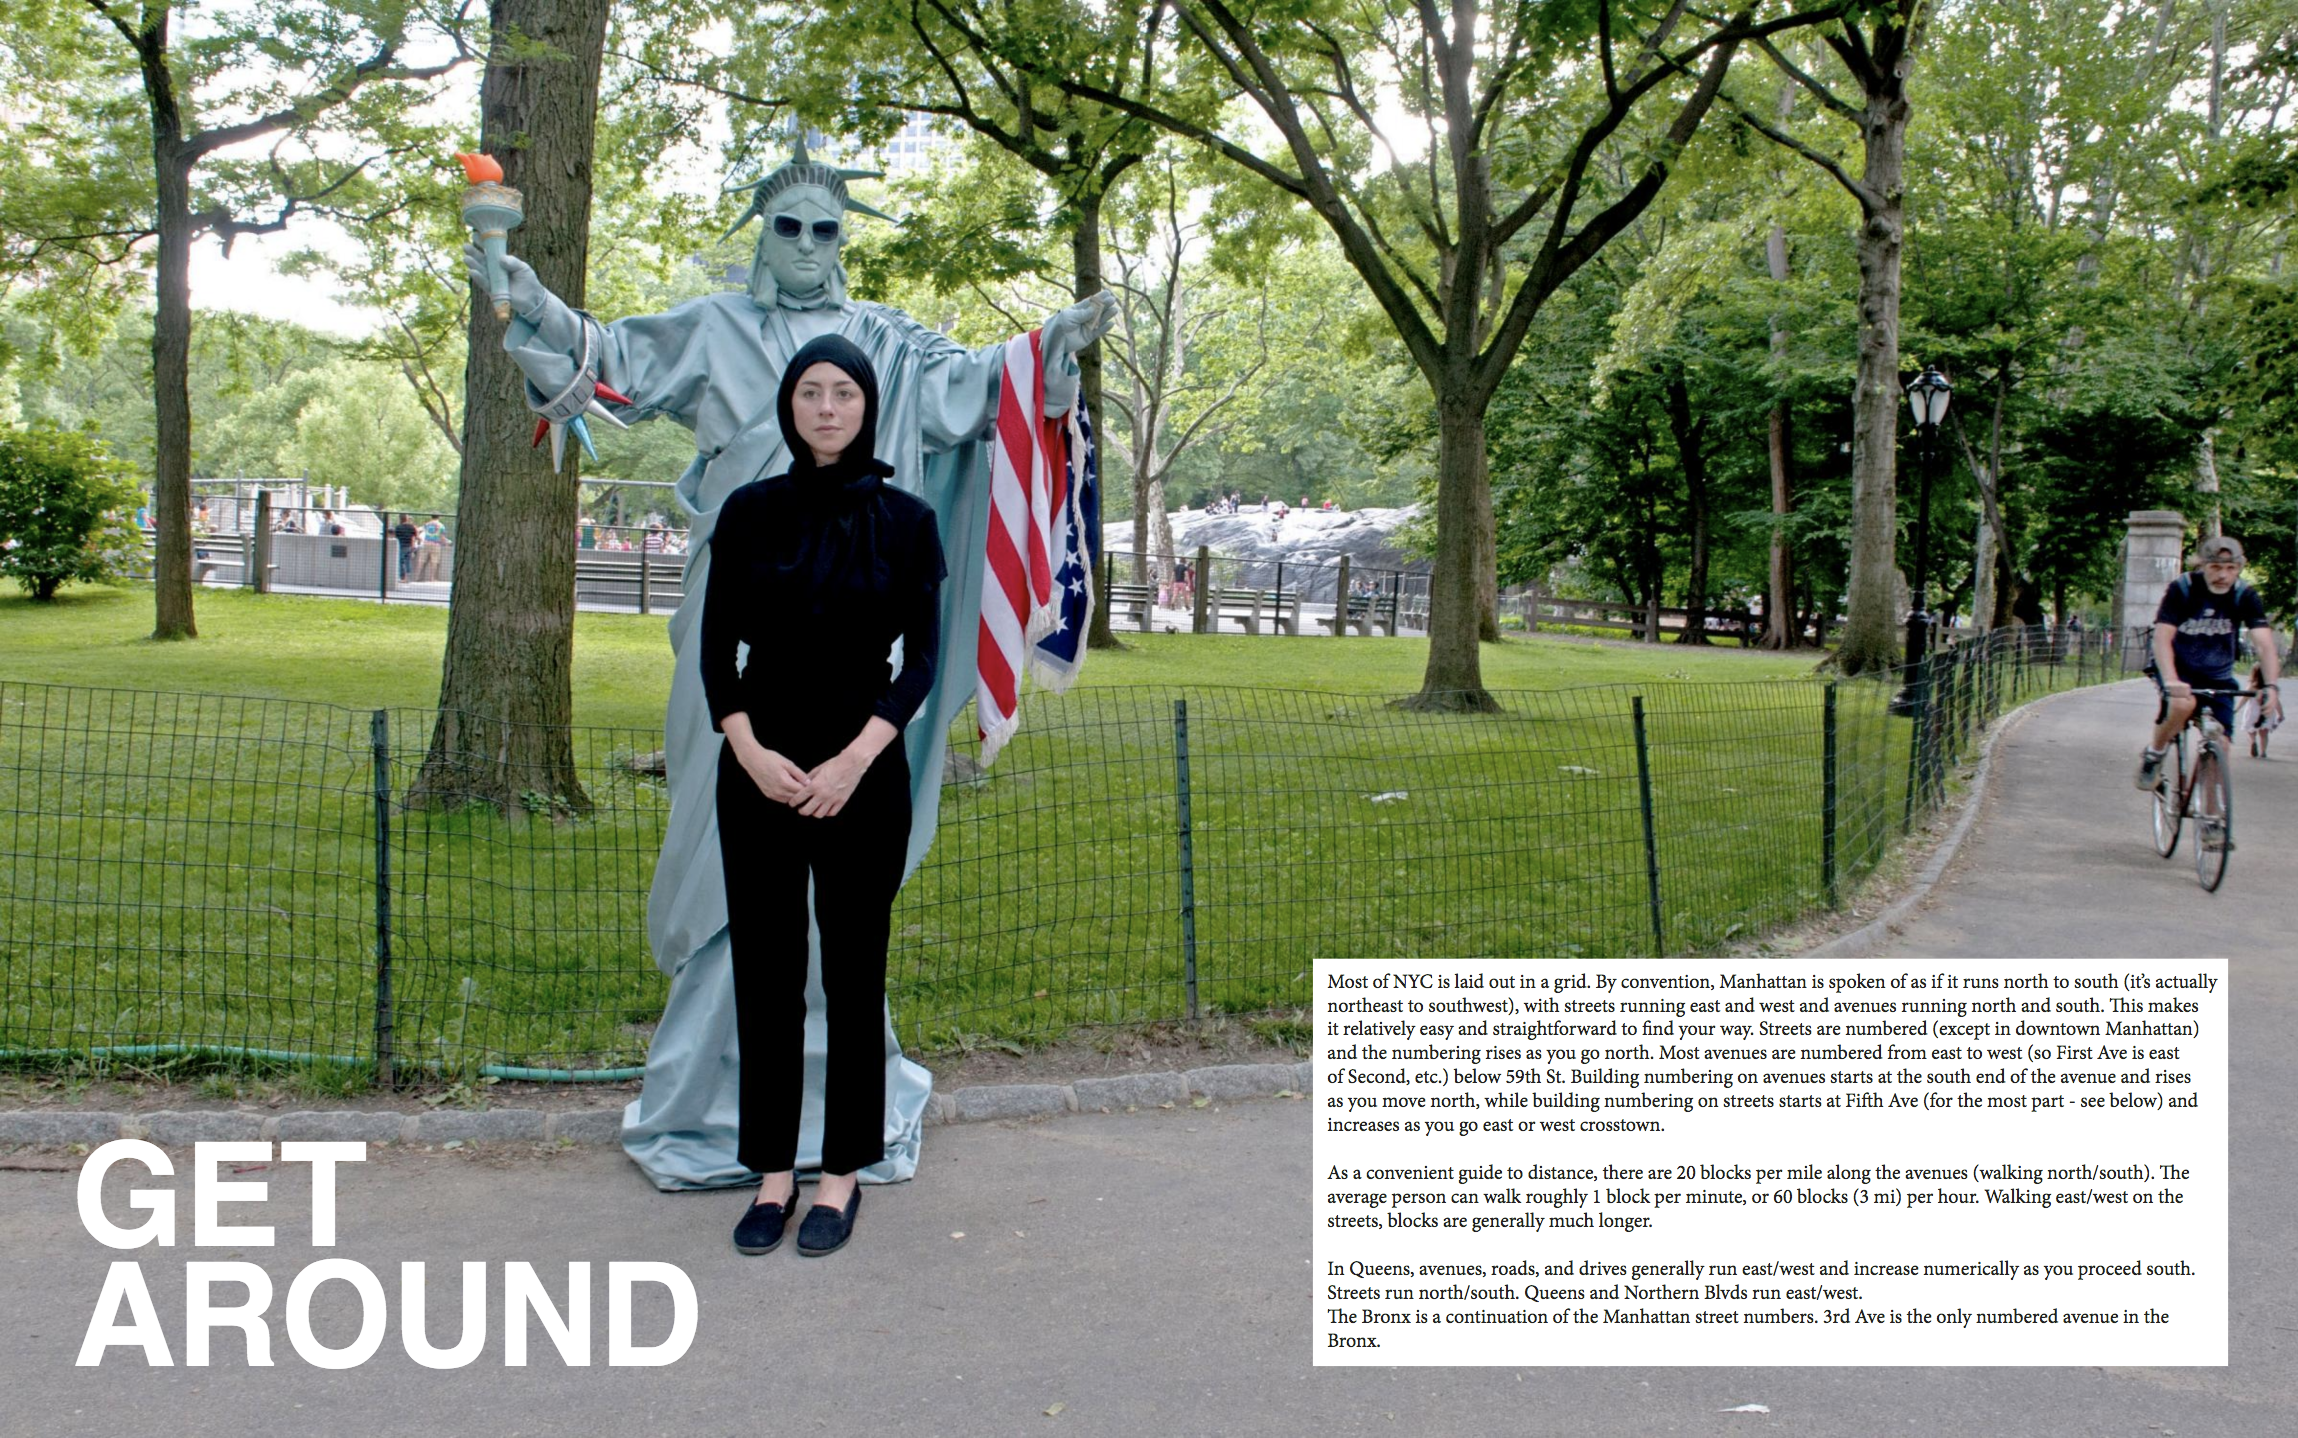 Travel Guide for Mama is a  conceptual travel guide  with advice, safety tips, and insights gleaned from interviews with dozens of women describing their daily experiences and encounters with discrimination while wearing hijab in New York.